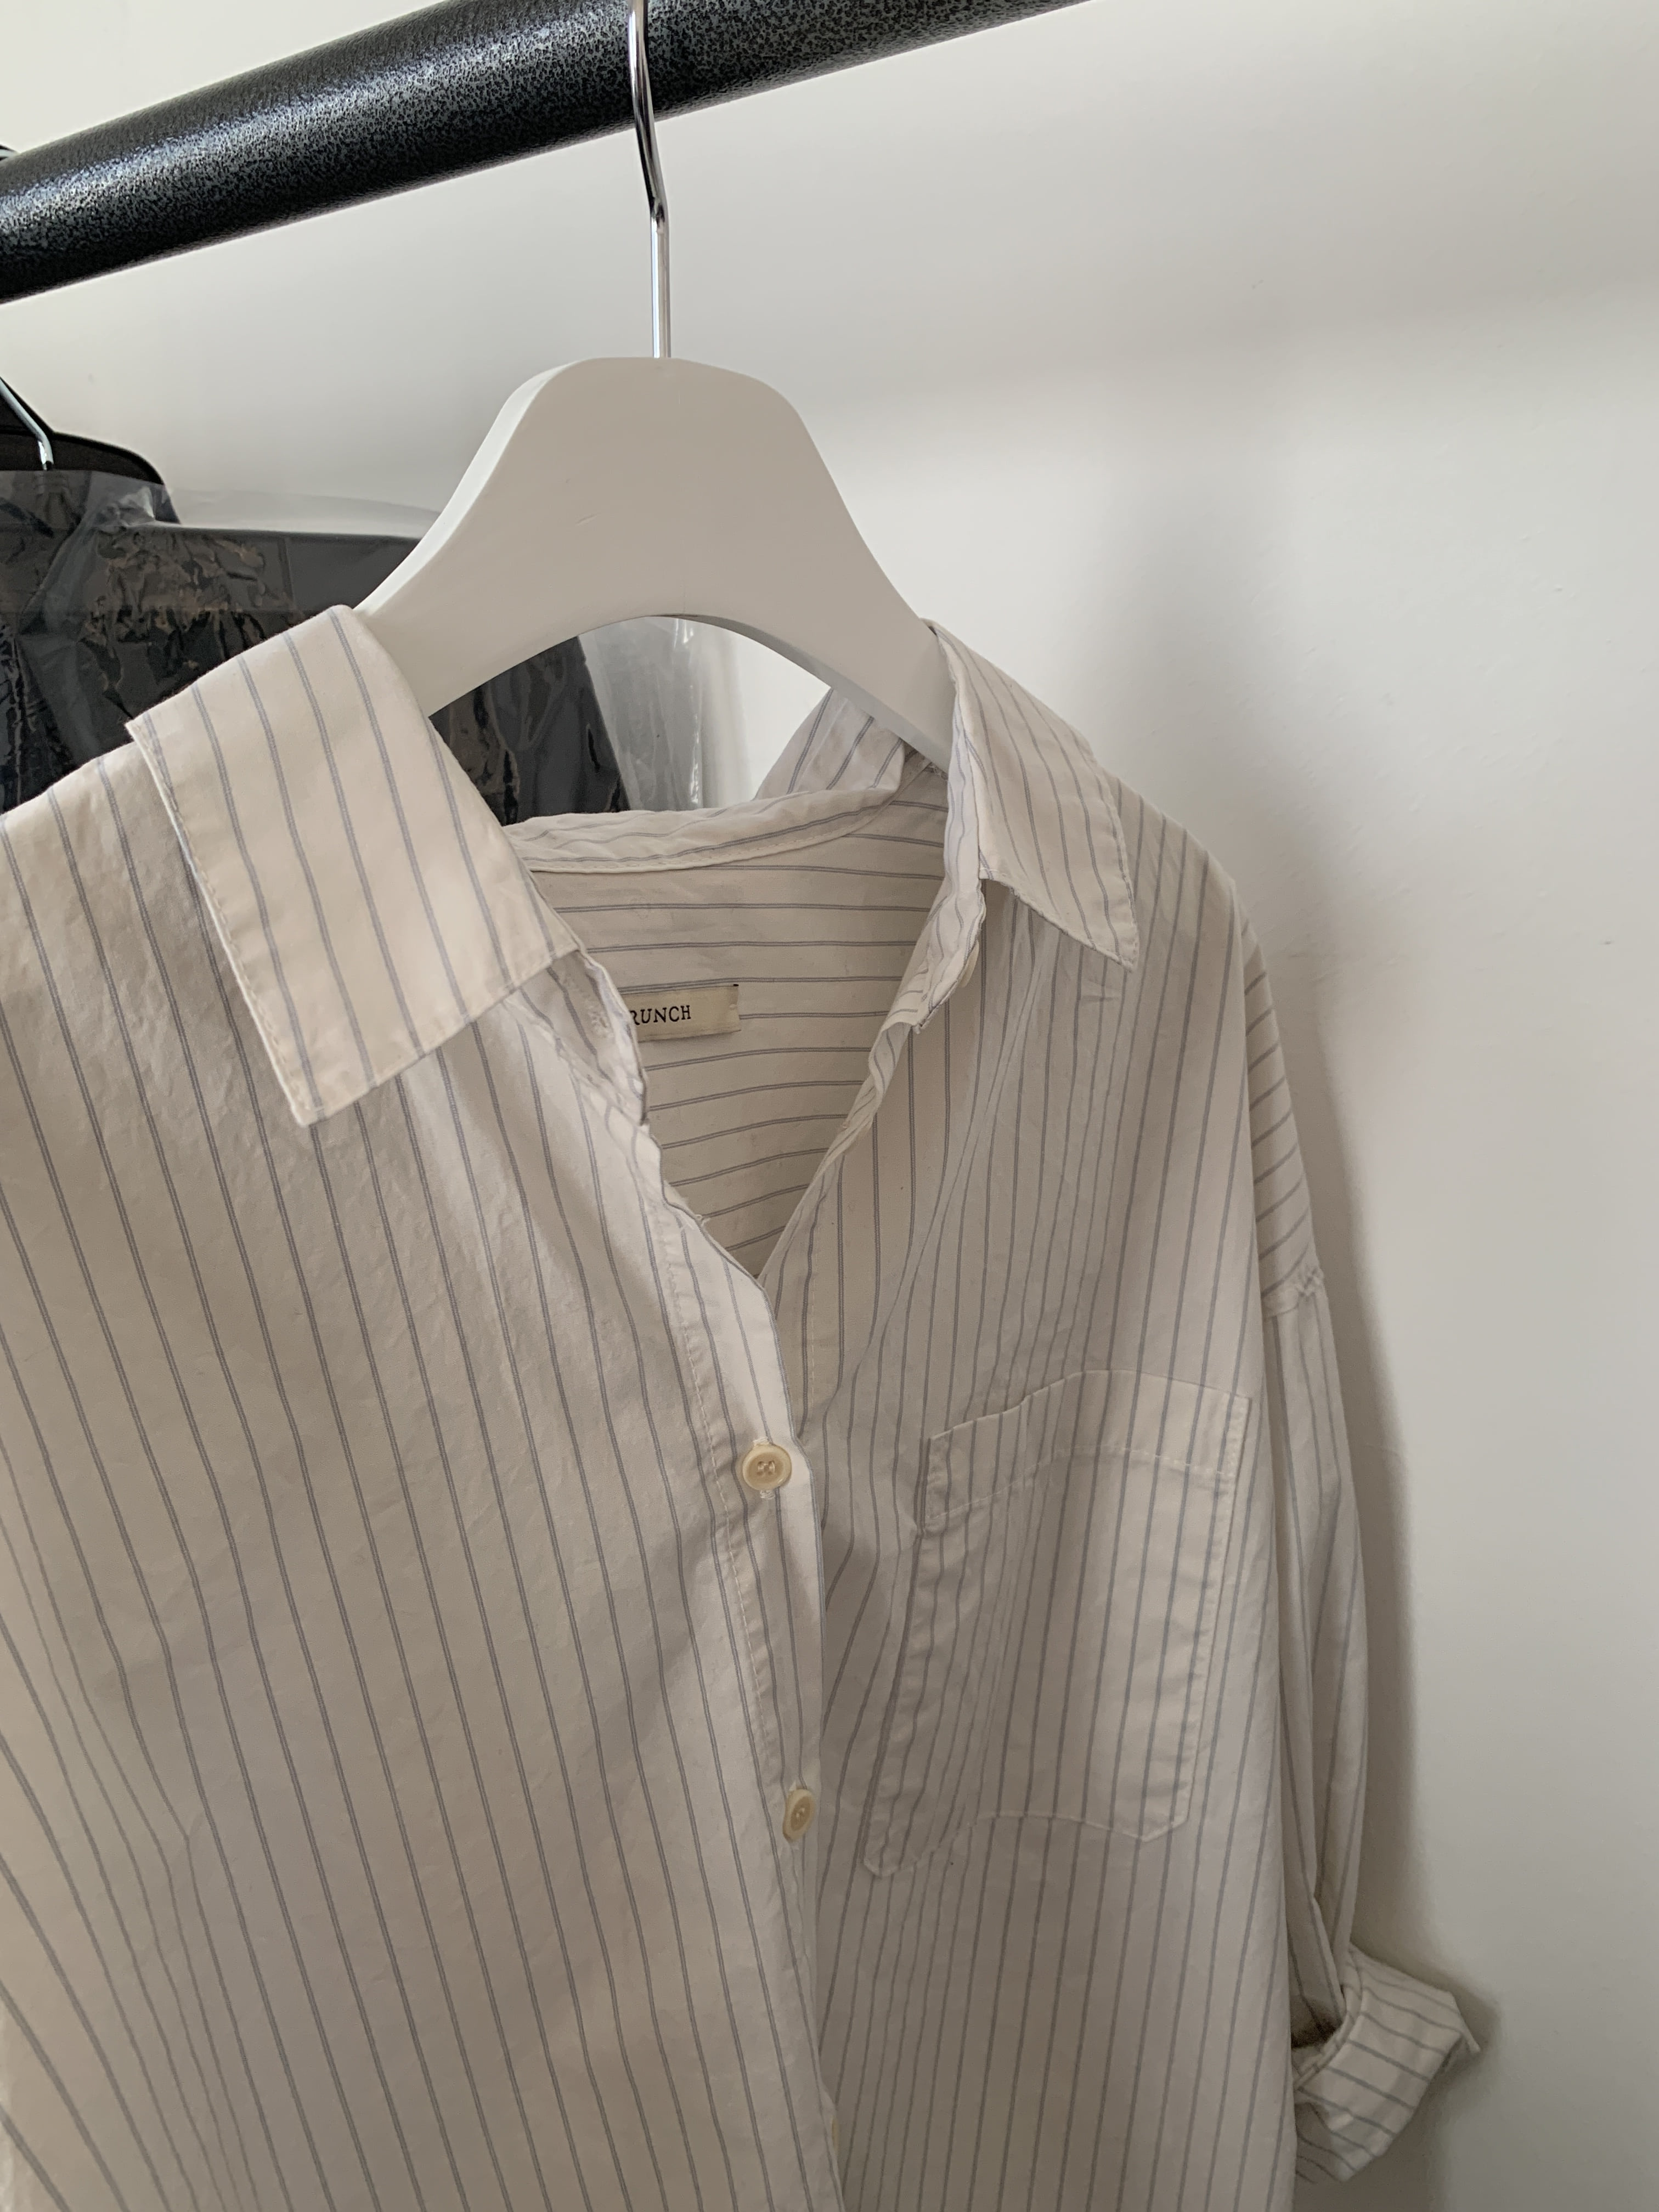 Water striped shirt